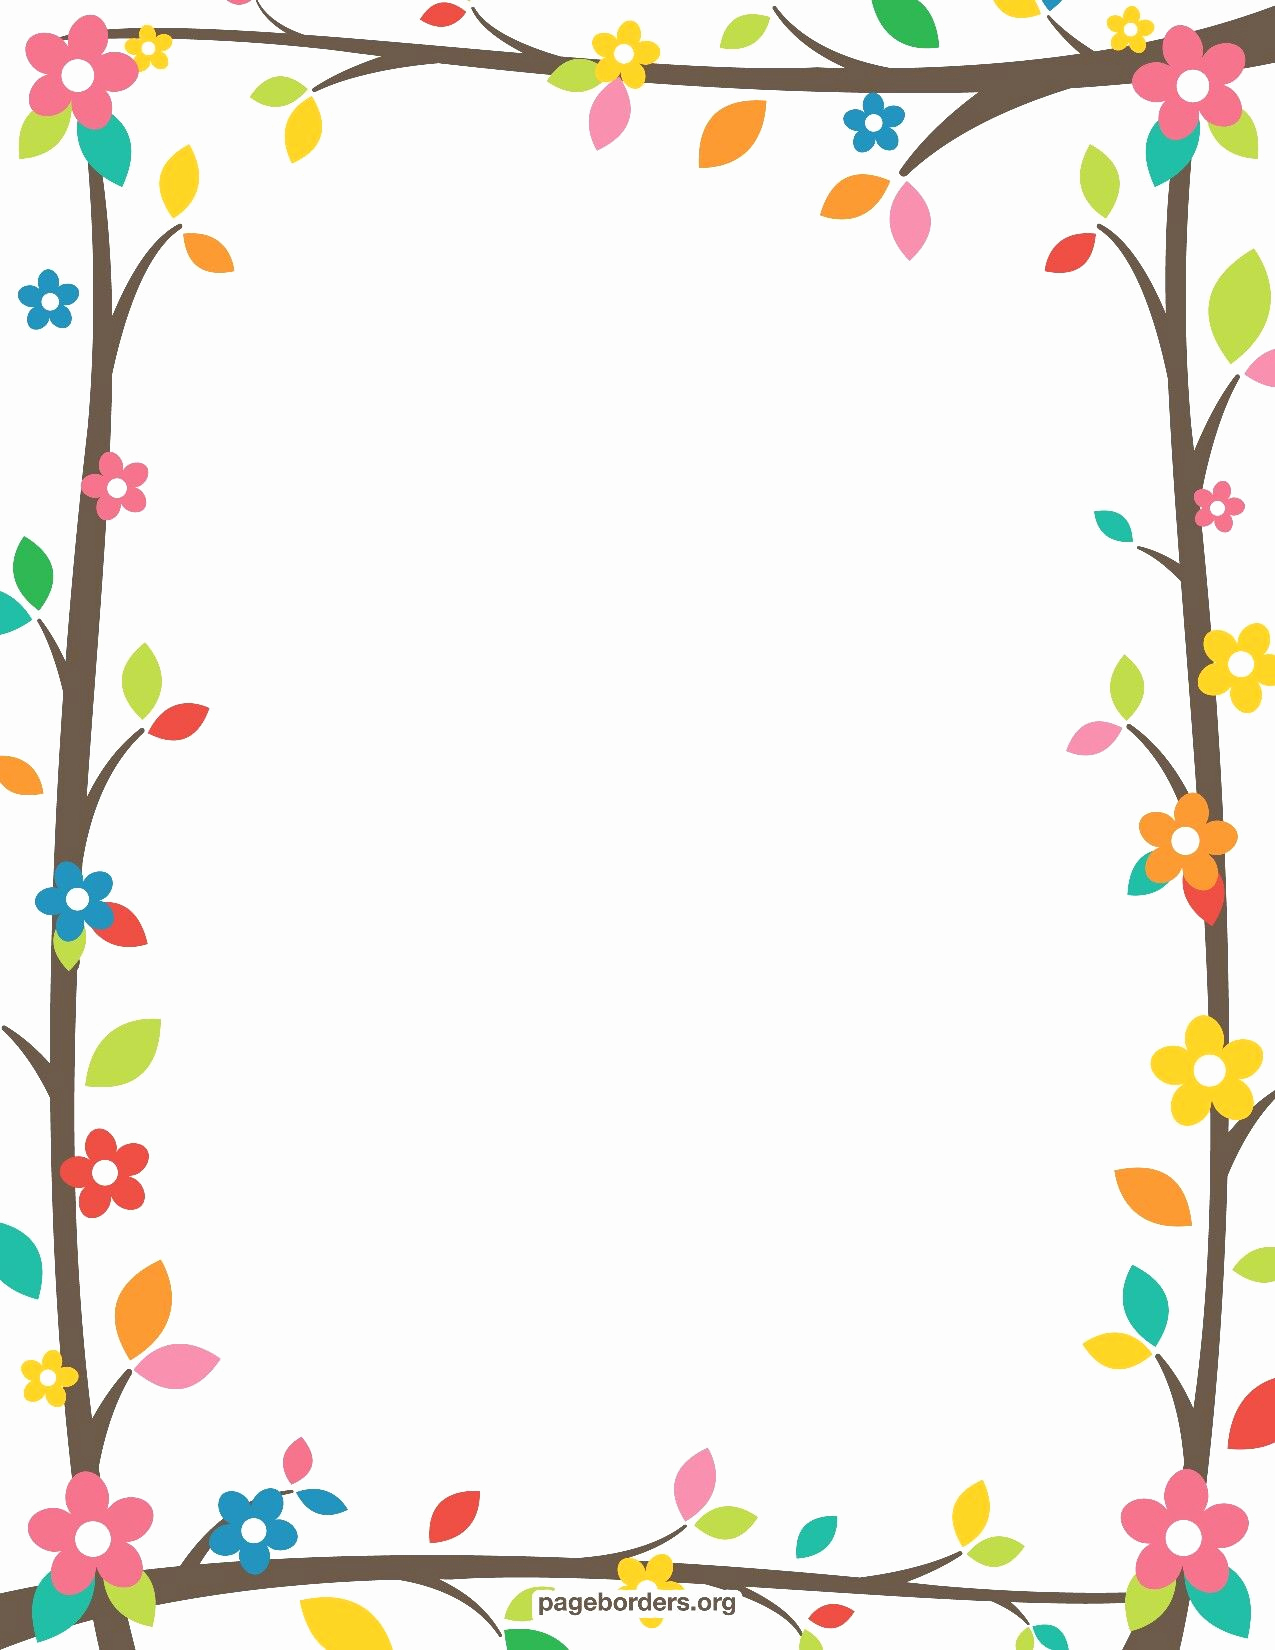 Free Printable Letterhead Borders Pin성원 전 On 칠교 Pinterest - Free Printable Letterhead Borders